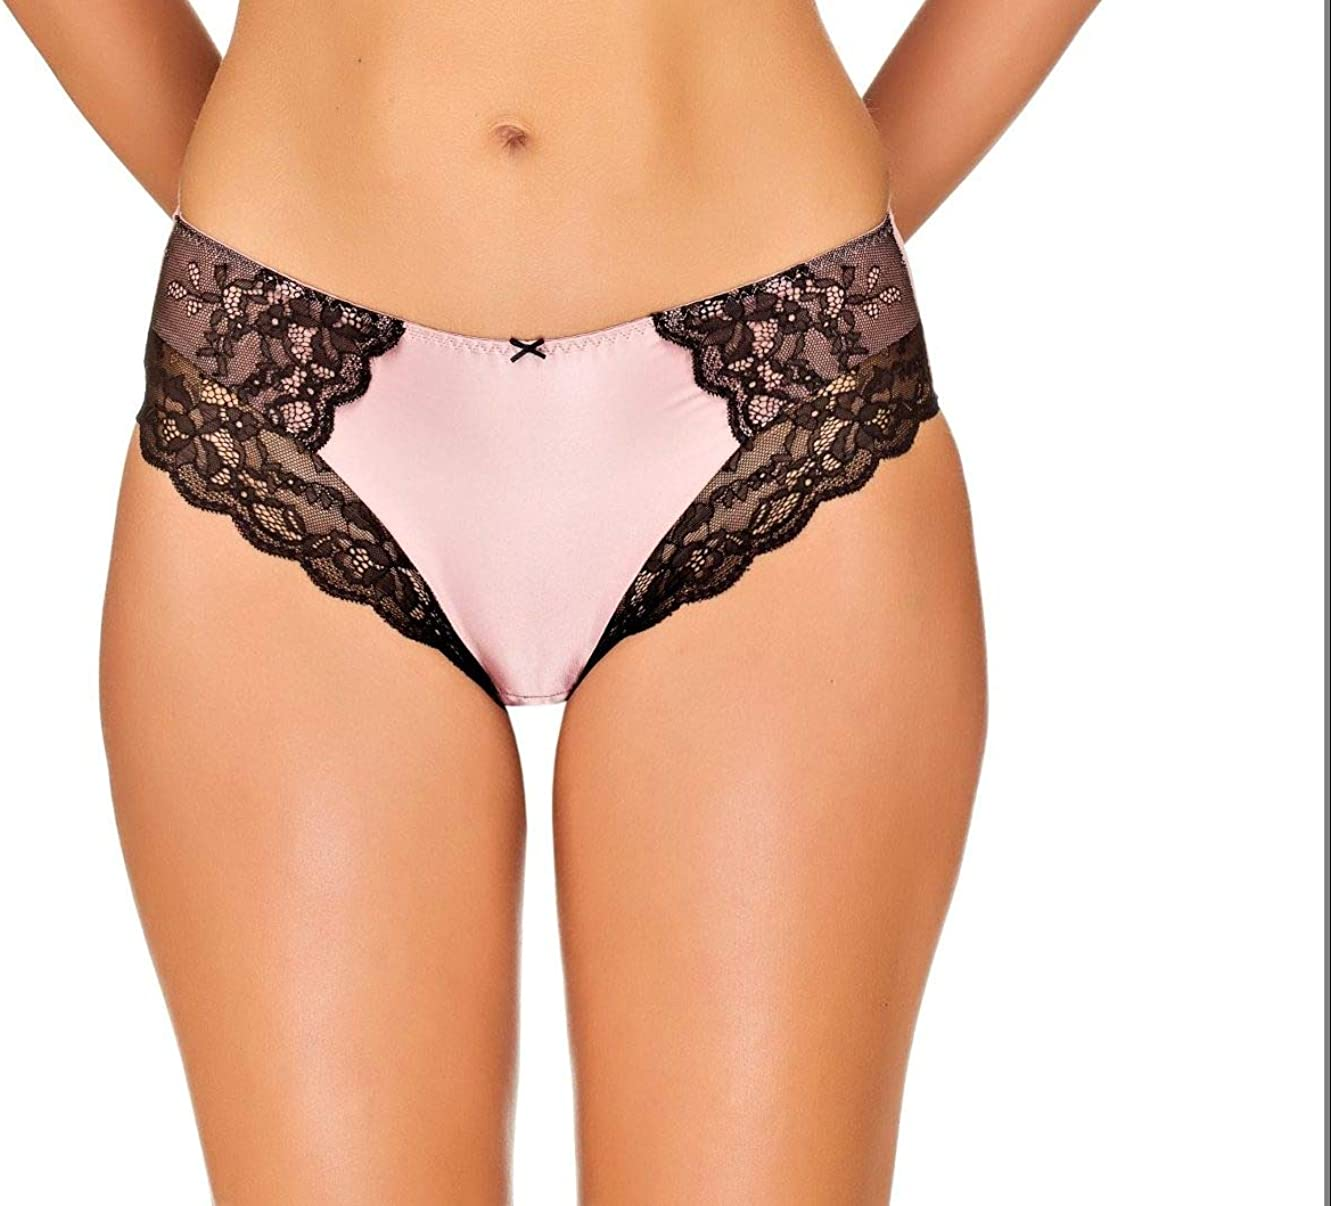 New Lauma Womens Thongs//Strings Collection Cotton Lace